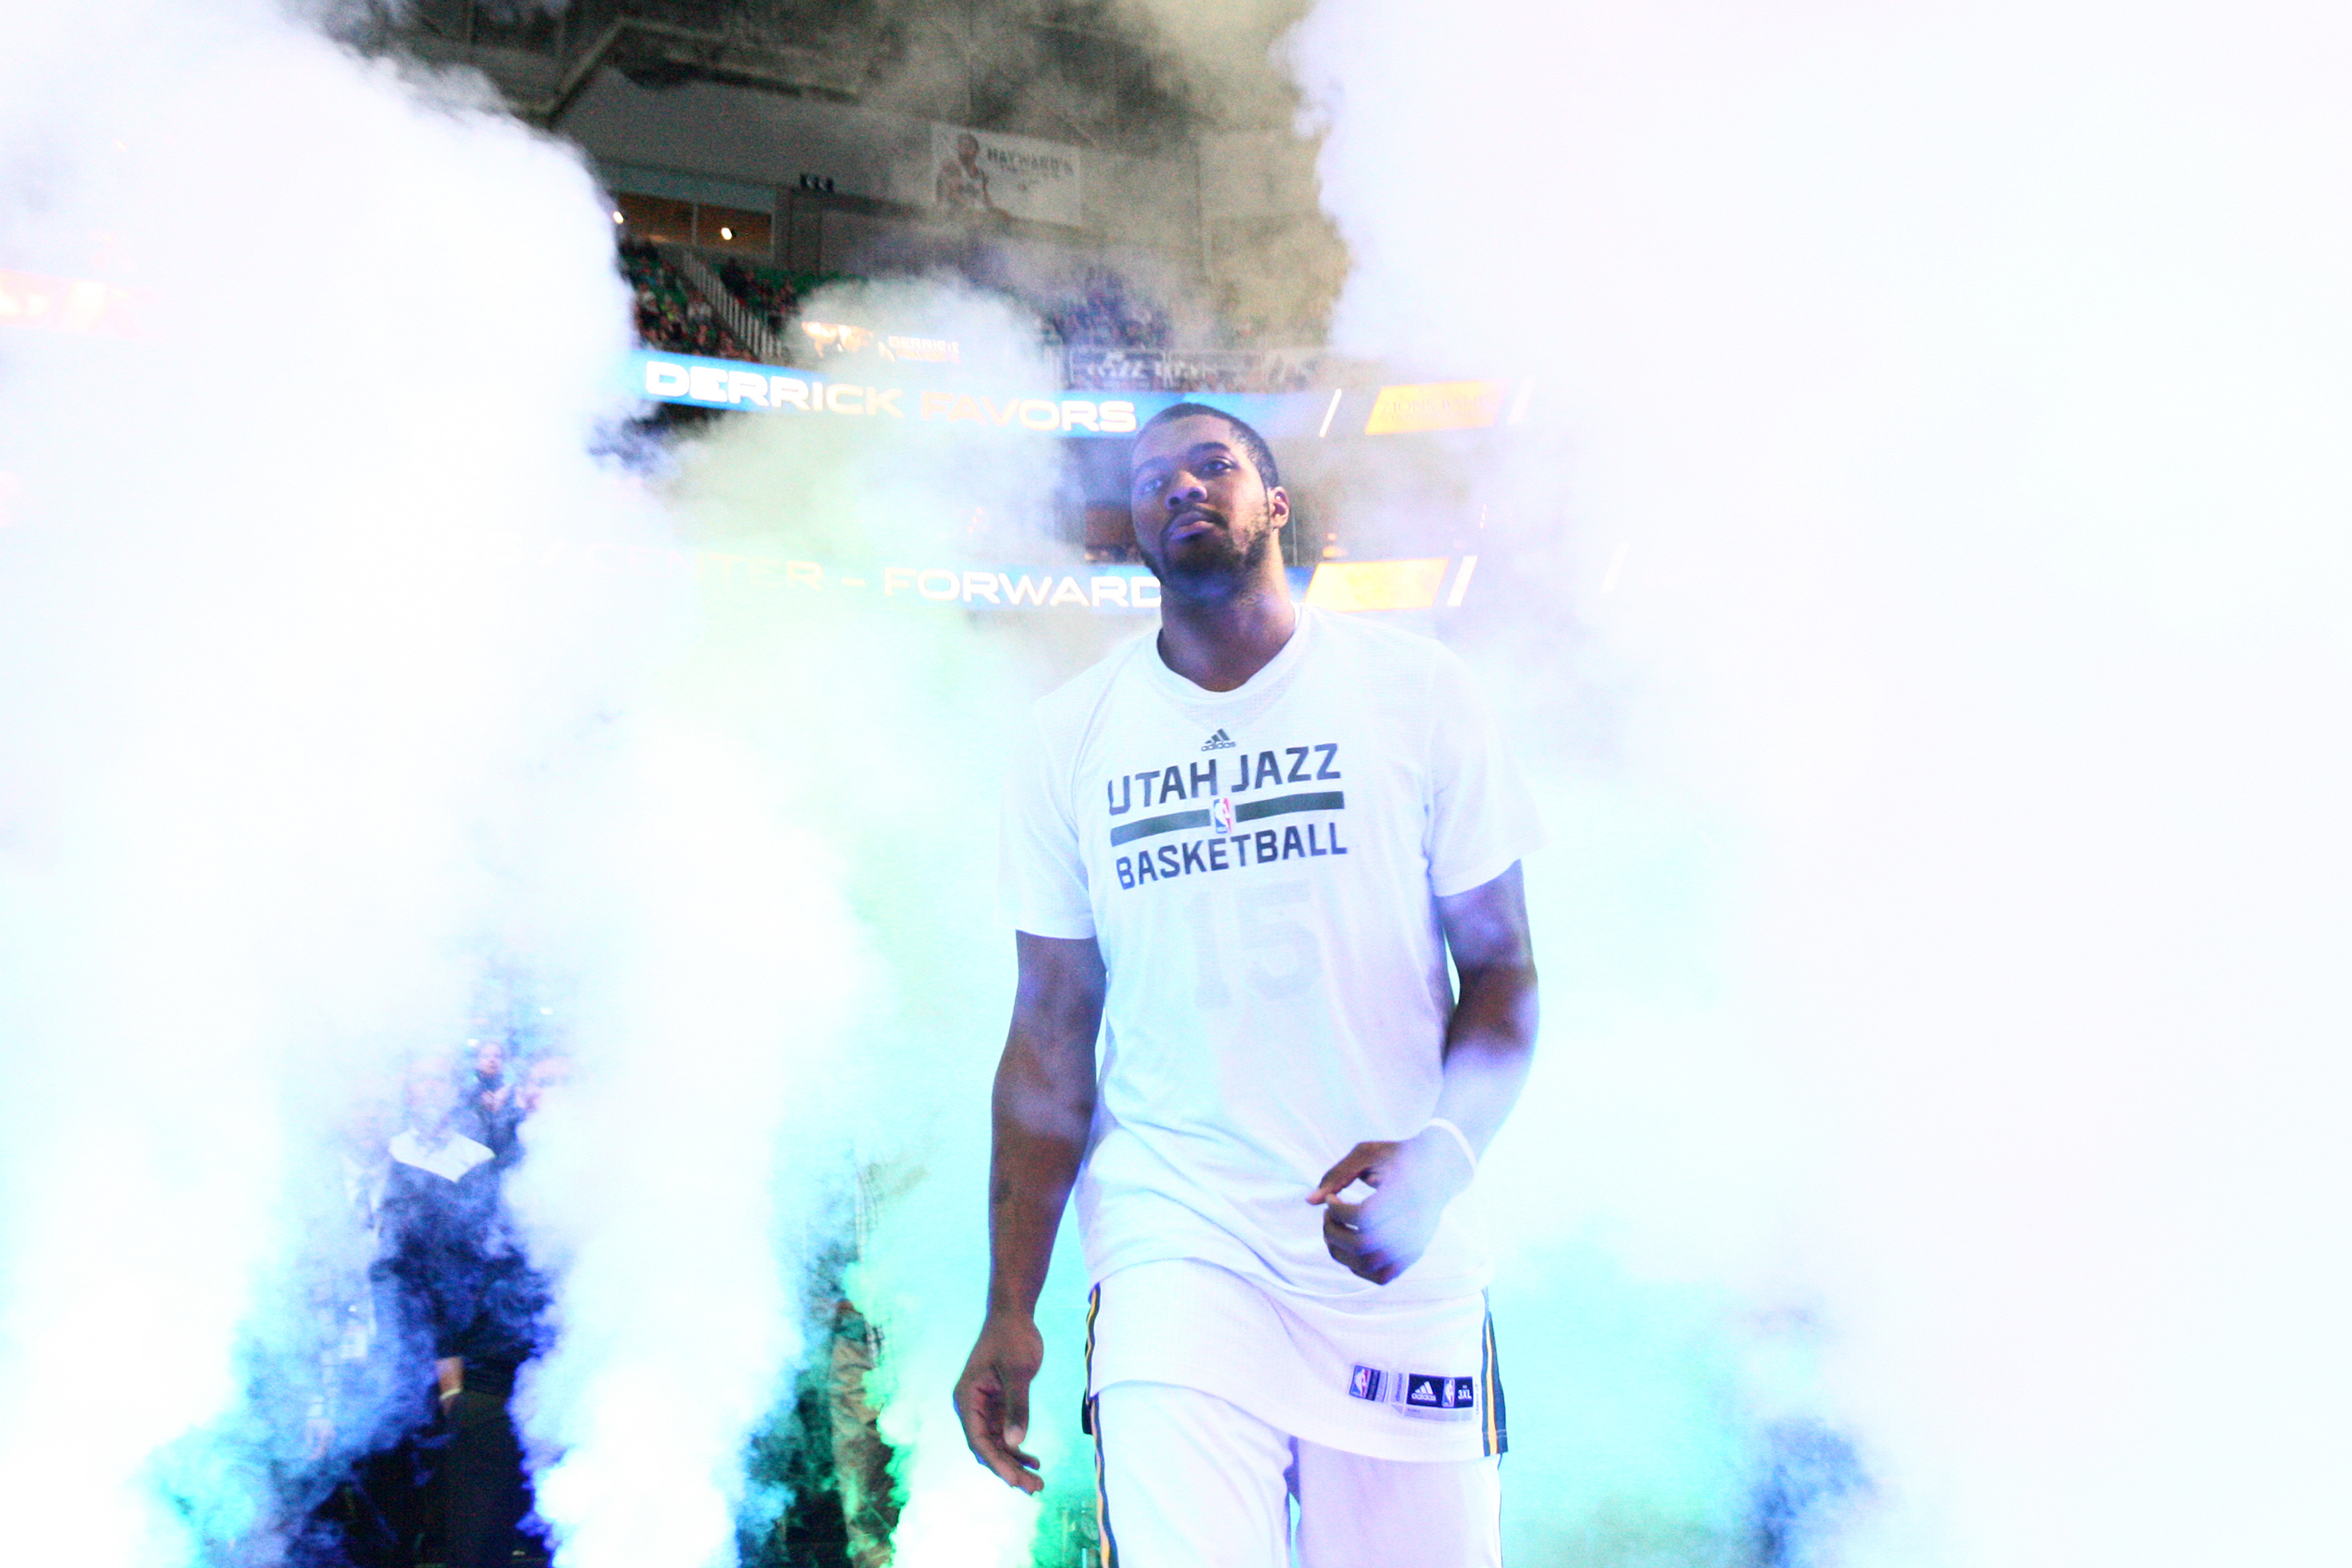 Bbq Hoes Action How Black Utah Jazz Players Have Embraced Salt Lake City